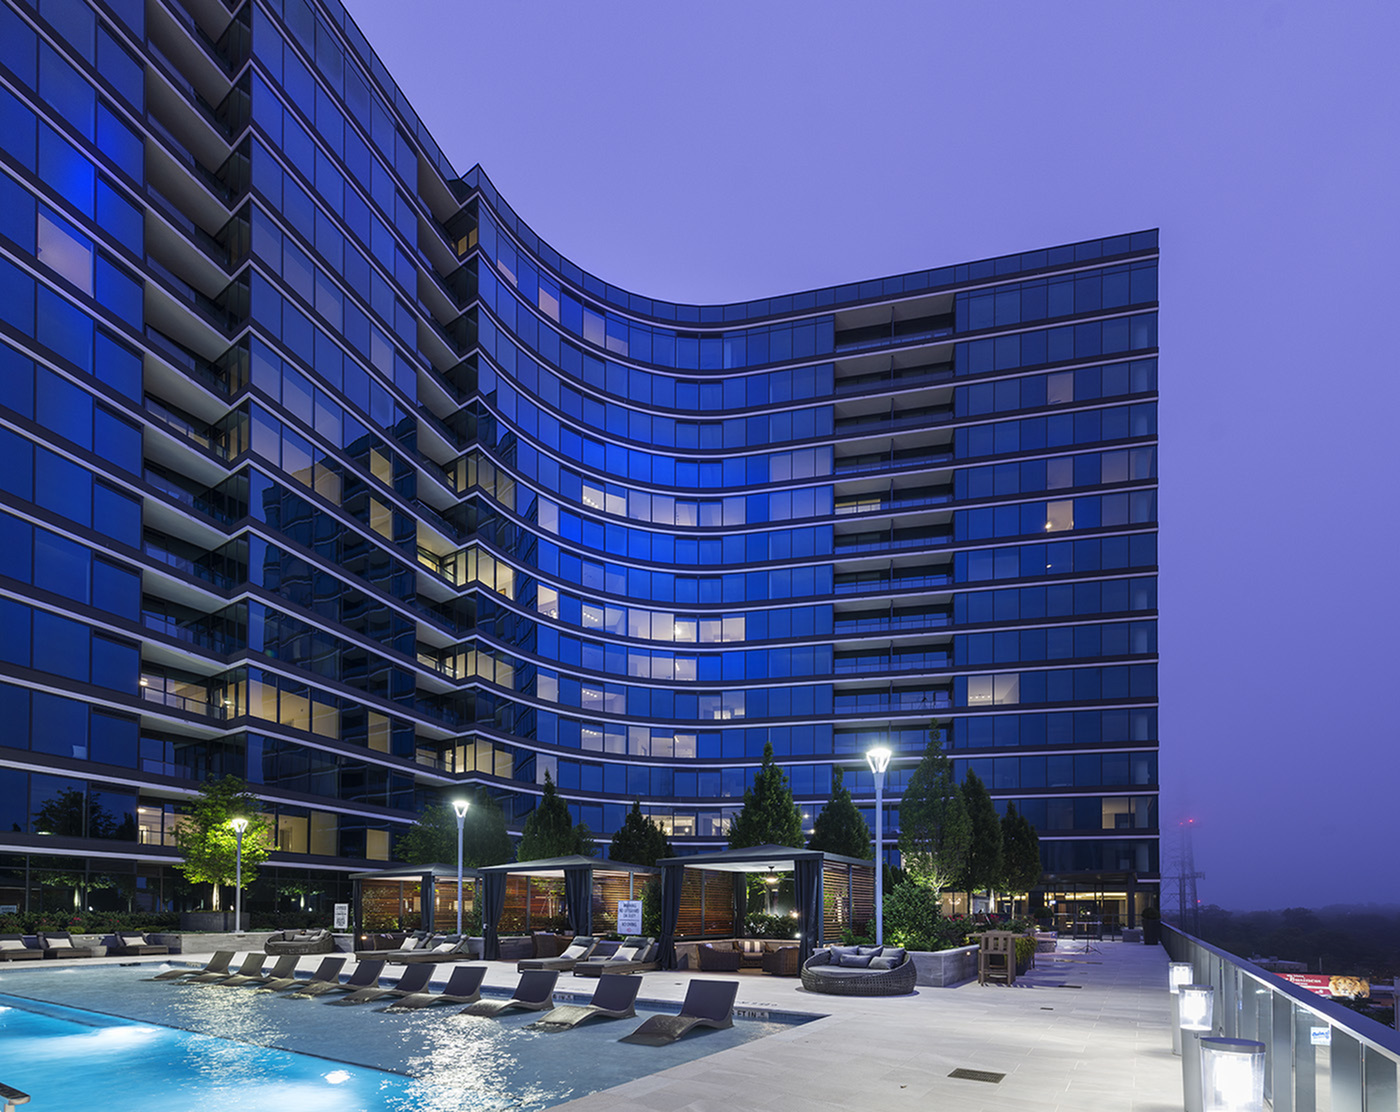 6th Floor Pool with Private pool-side cabanas at Hanover Buckhead Village